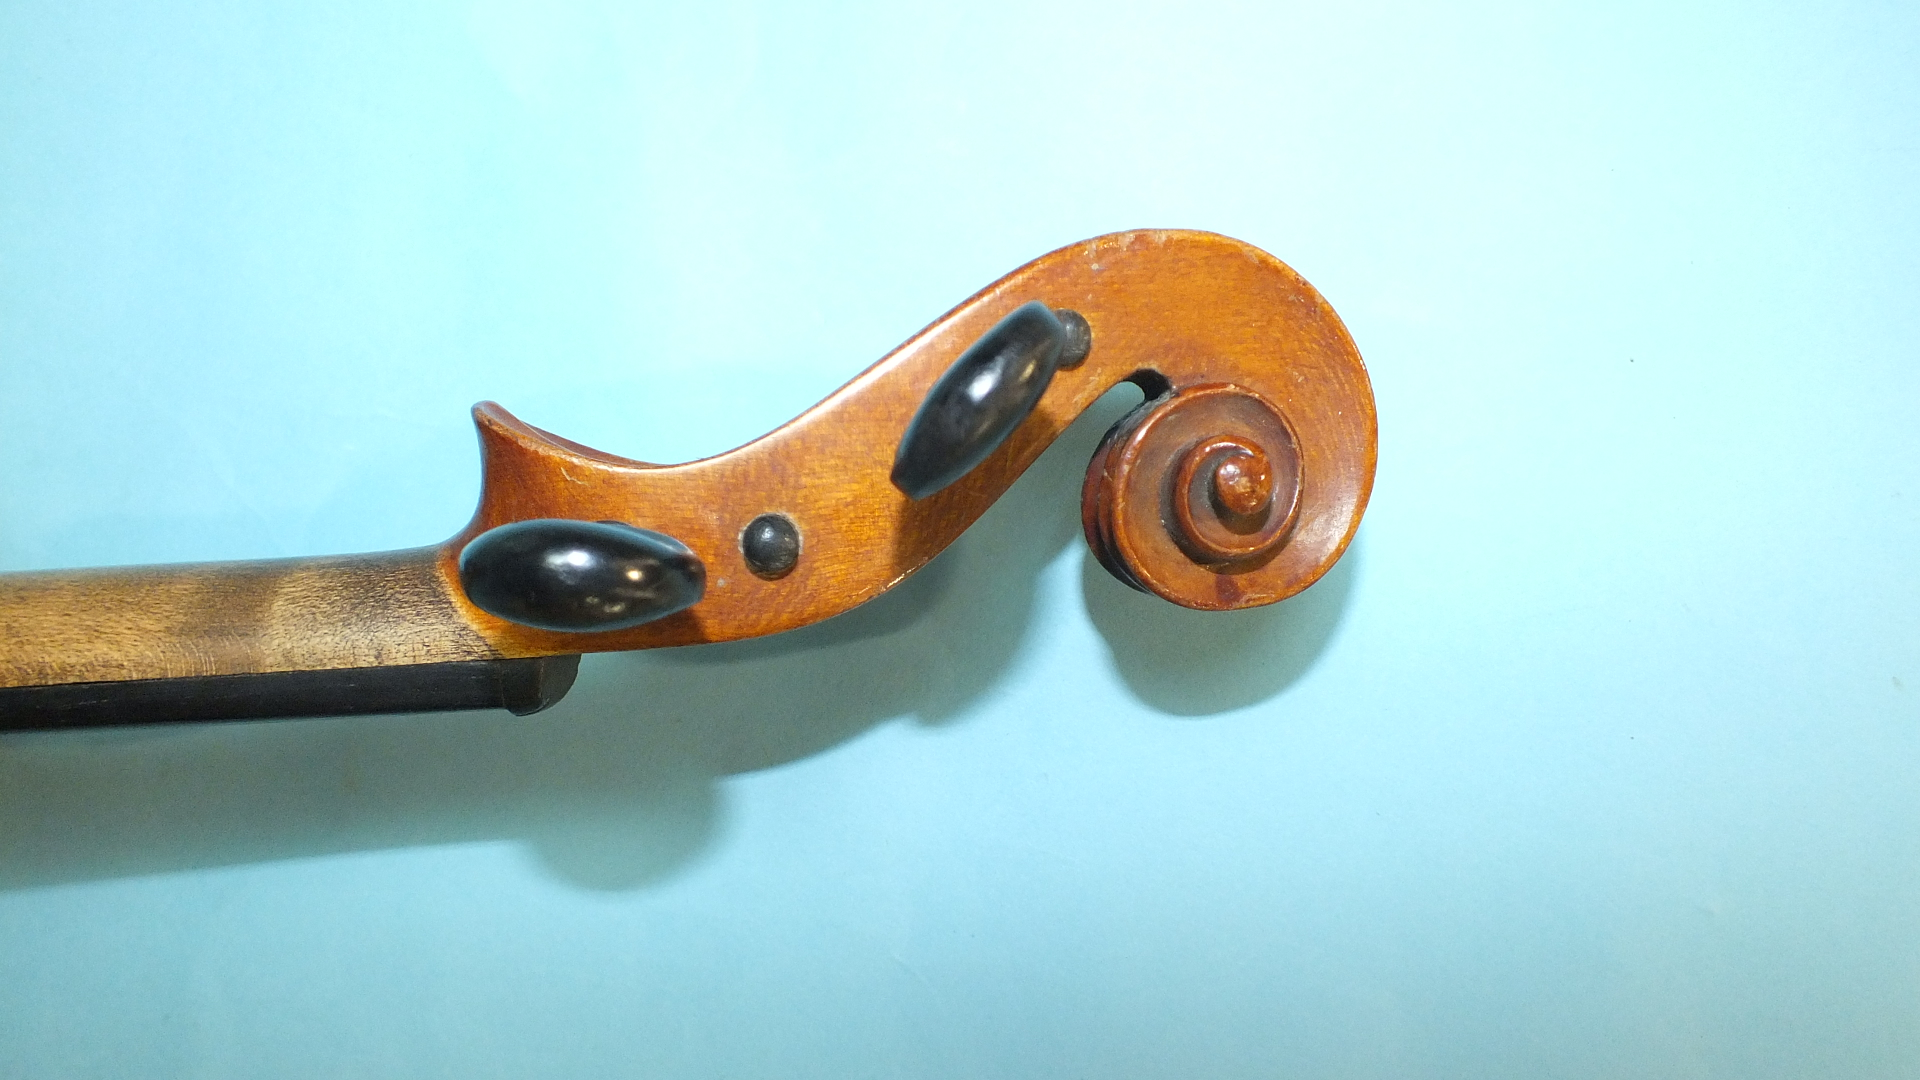 Lot 504 - A violin 'The Maidstone' by Murdoch Murdoch & Co, 35.5cm, with two-piece back, cased, with bow.